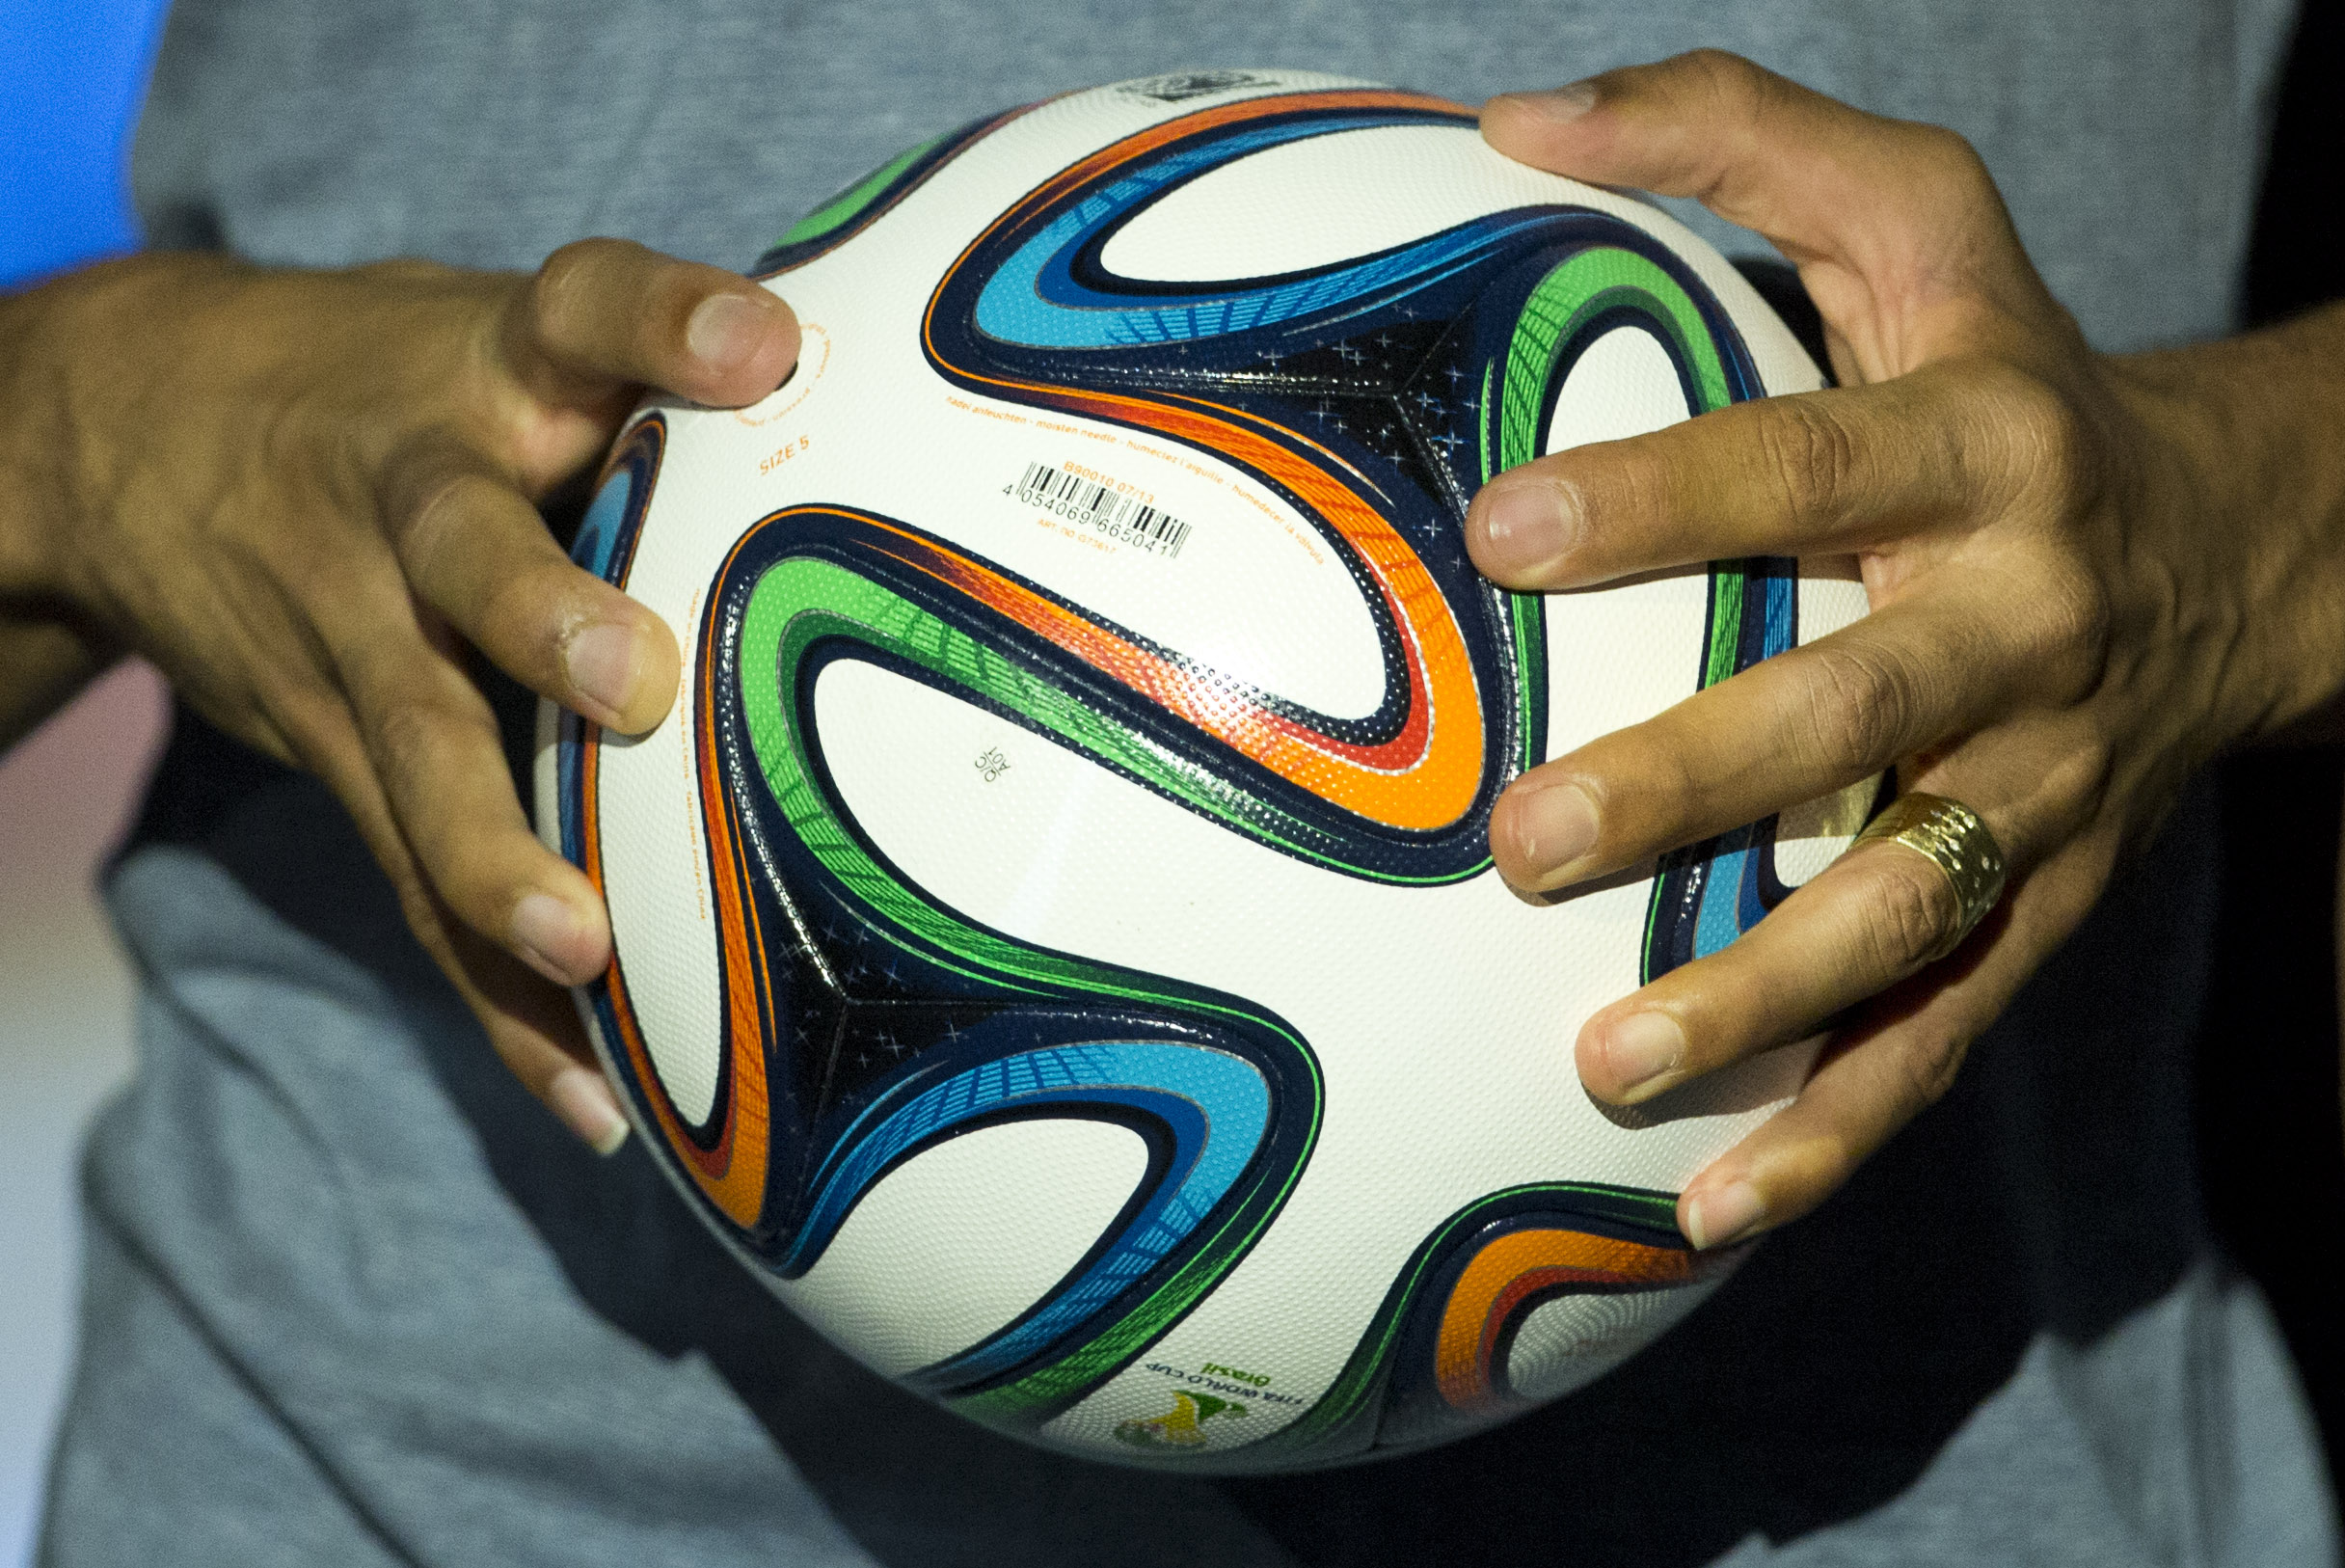 Panels, seams, power: Brazuca, ready for World Cup